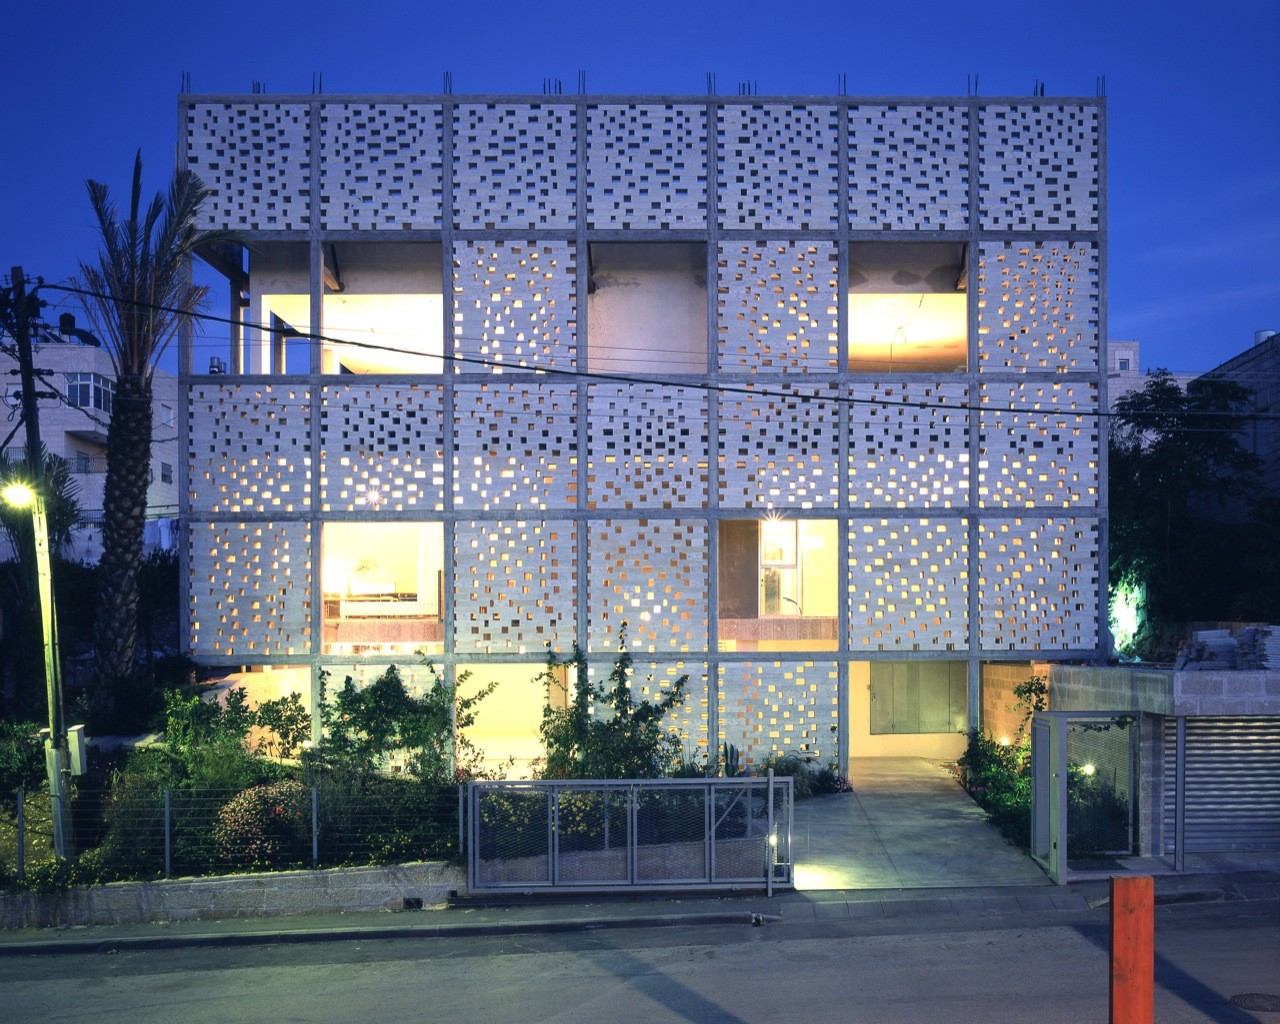 The mashrabiya house senan abdelqader archdaily - Britains most modern buildings the contemporary design competition ...